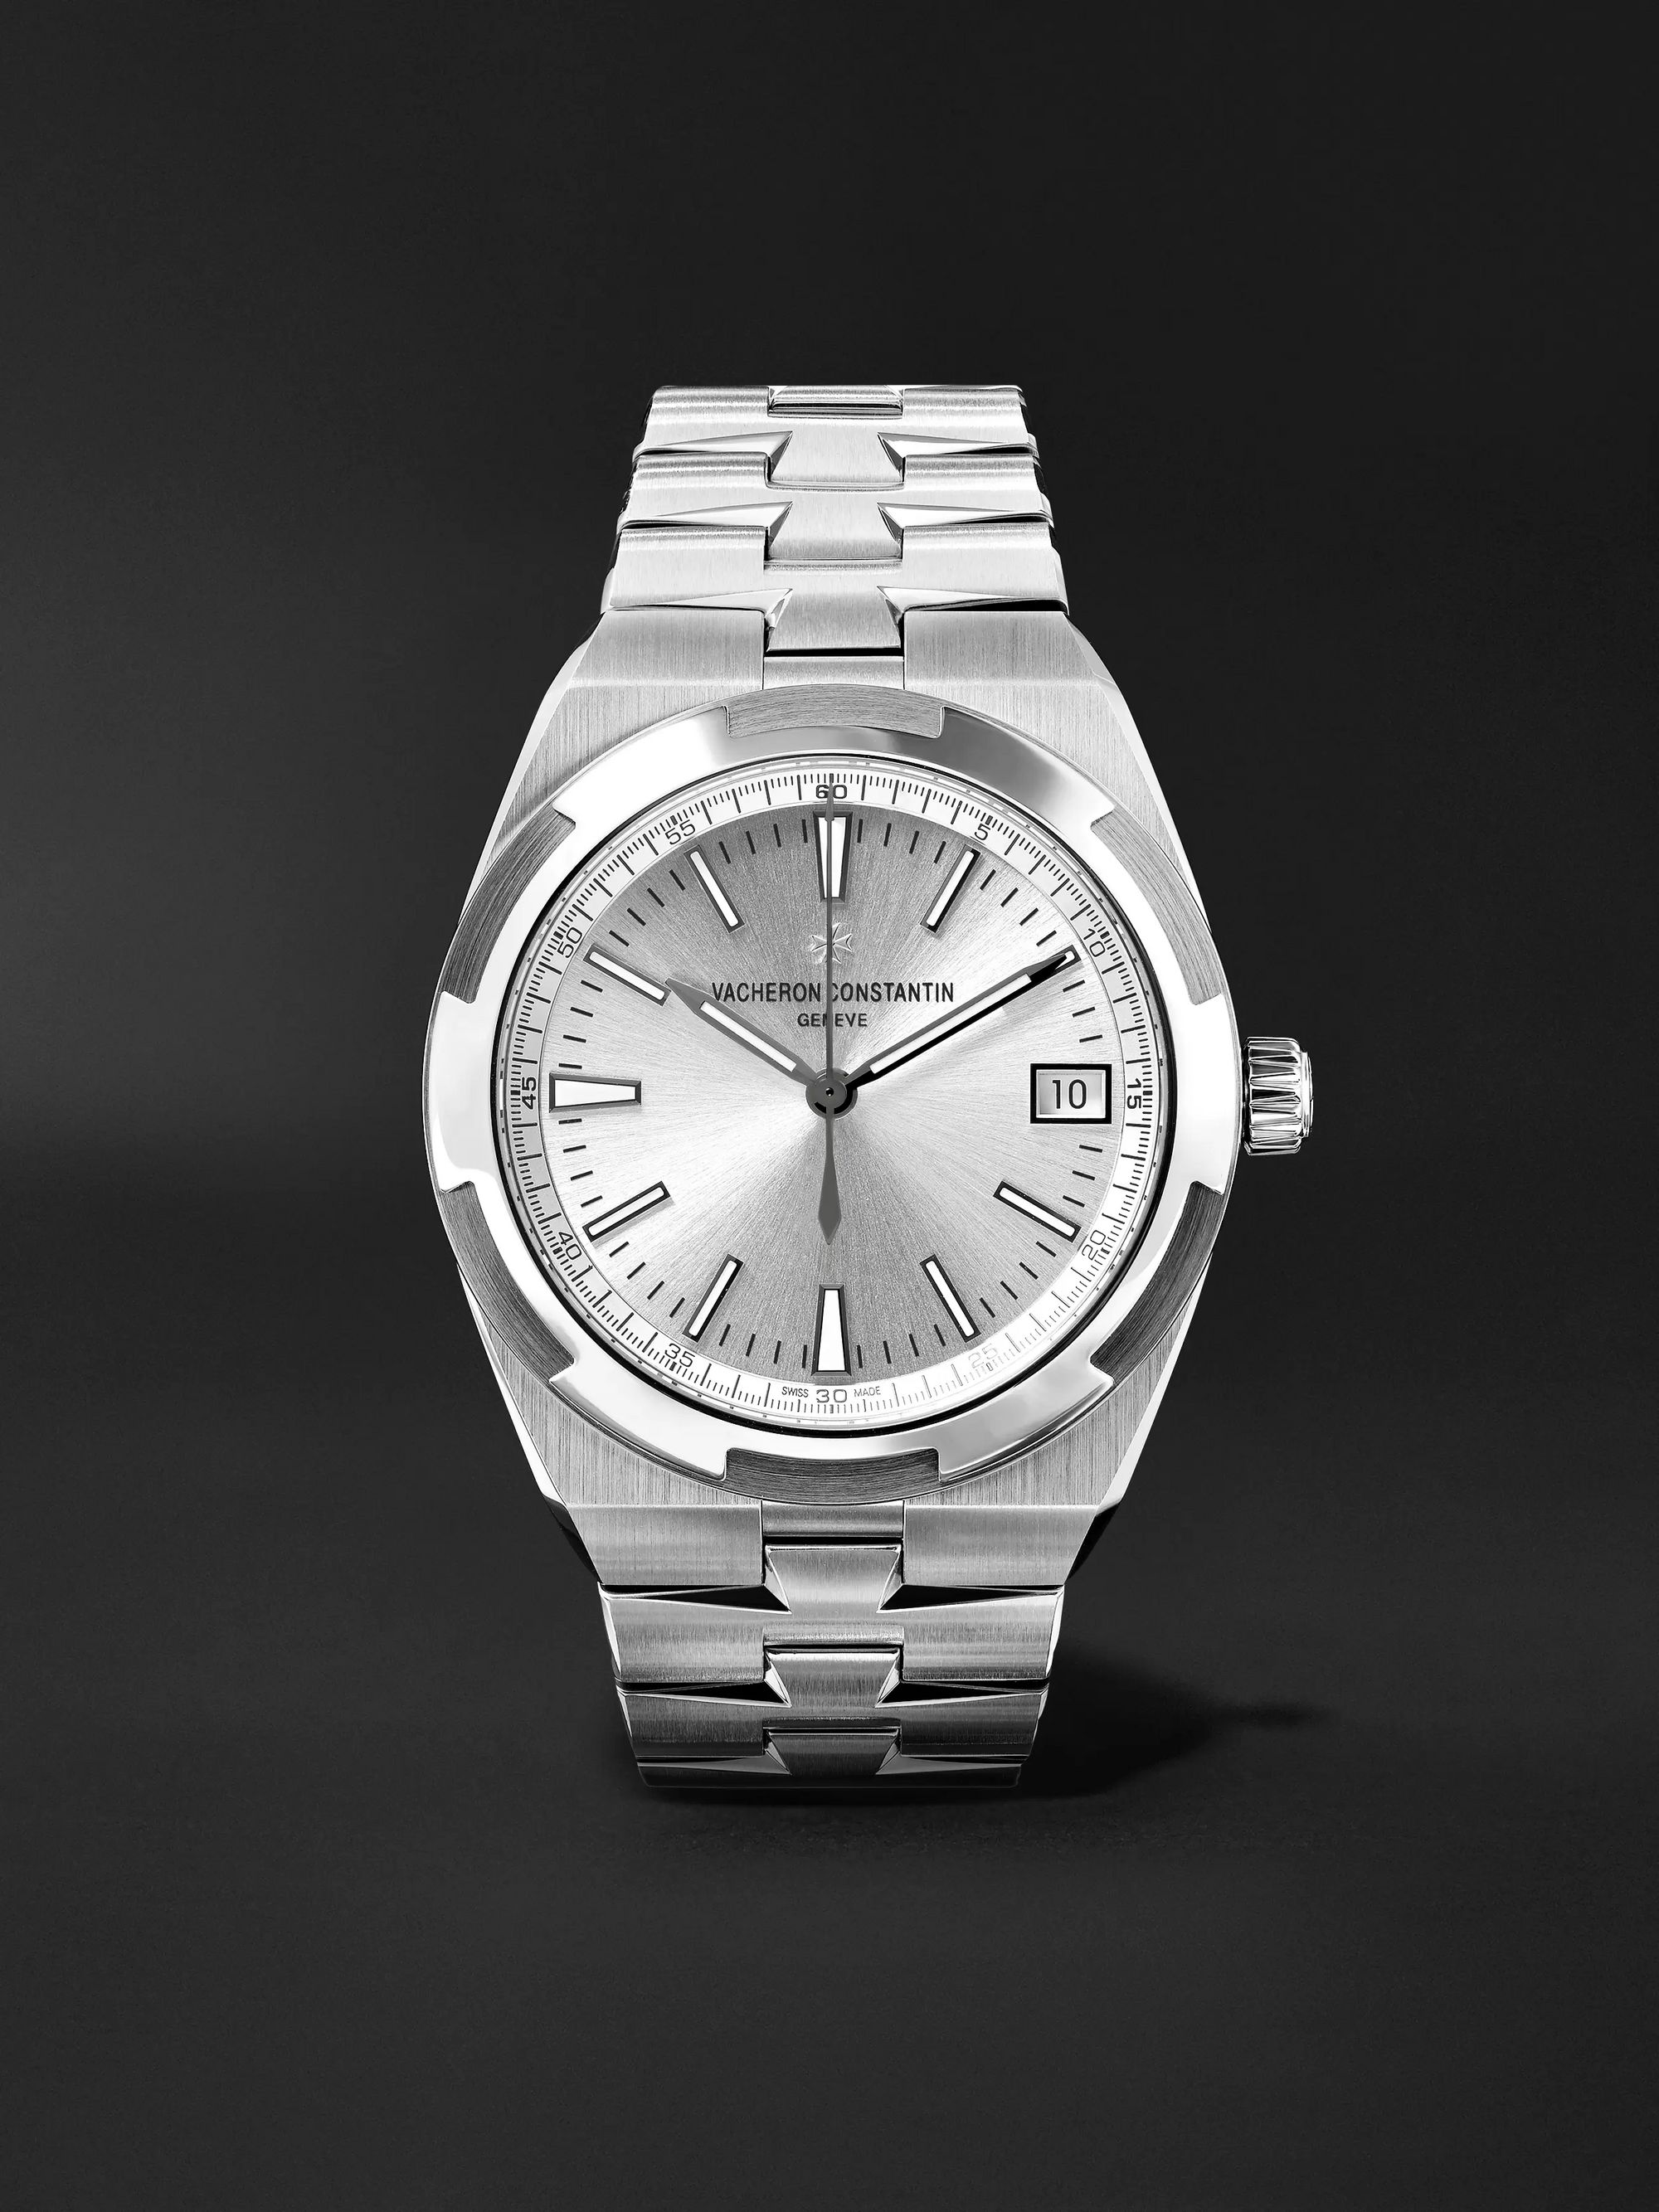 Vacheron Constantin Overseas Automatic 41mm Stainless Steel Watch, Ref. No. 4500V/110A-B126 X45A9727